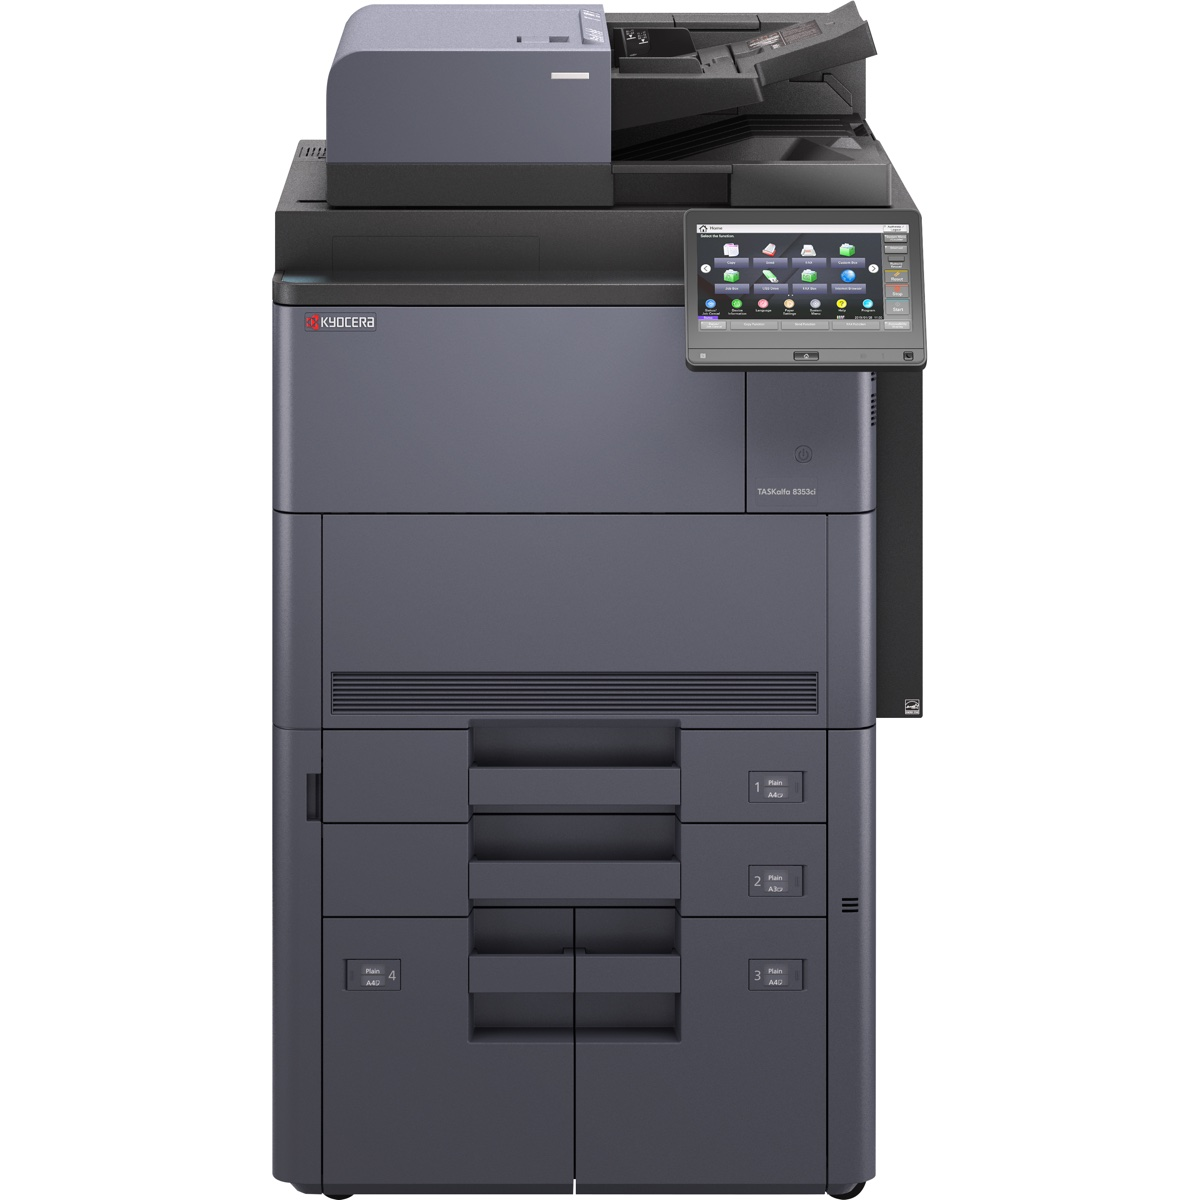 Kyocera Copiers:  The Kyocera TASKalfa 8353ci Copier